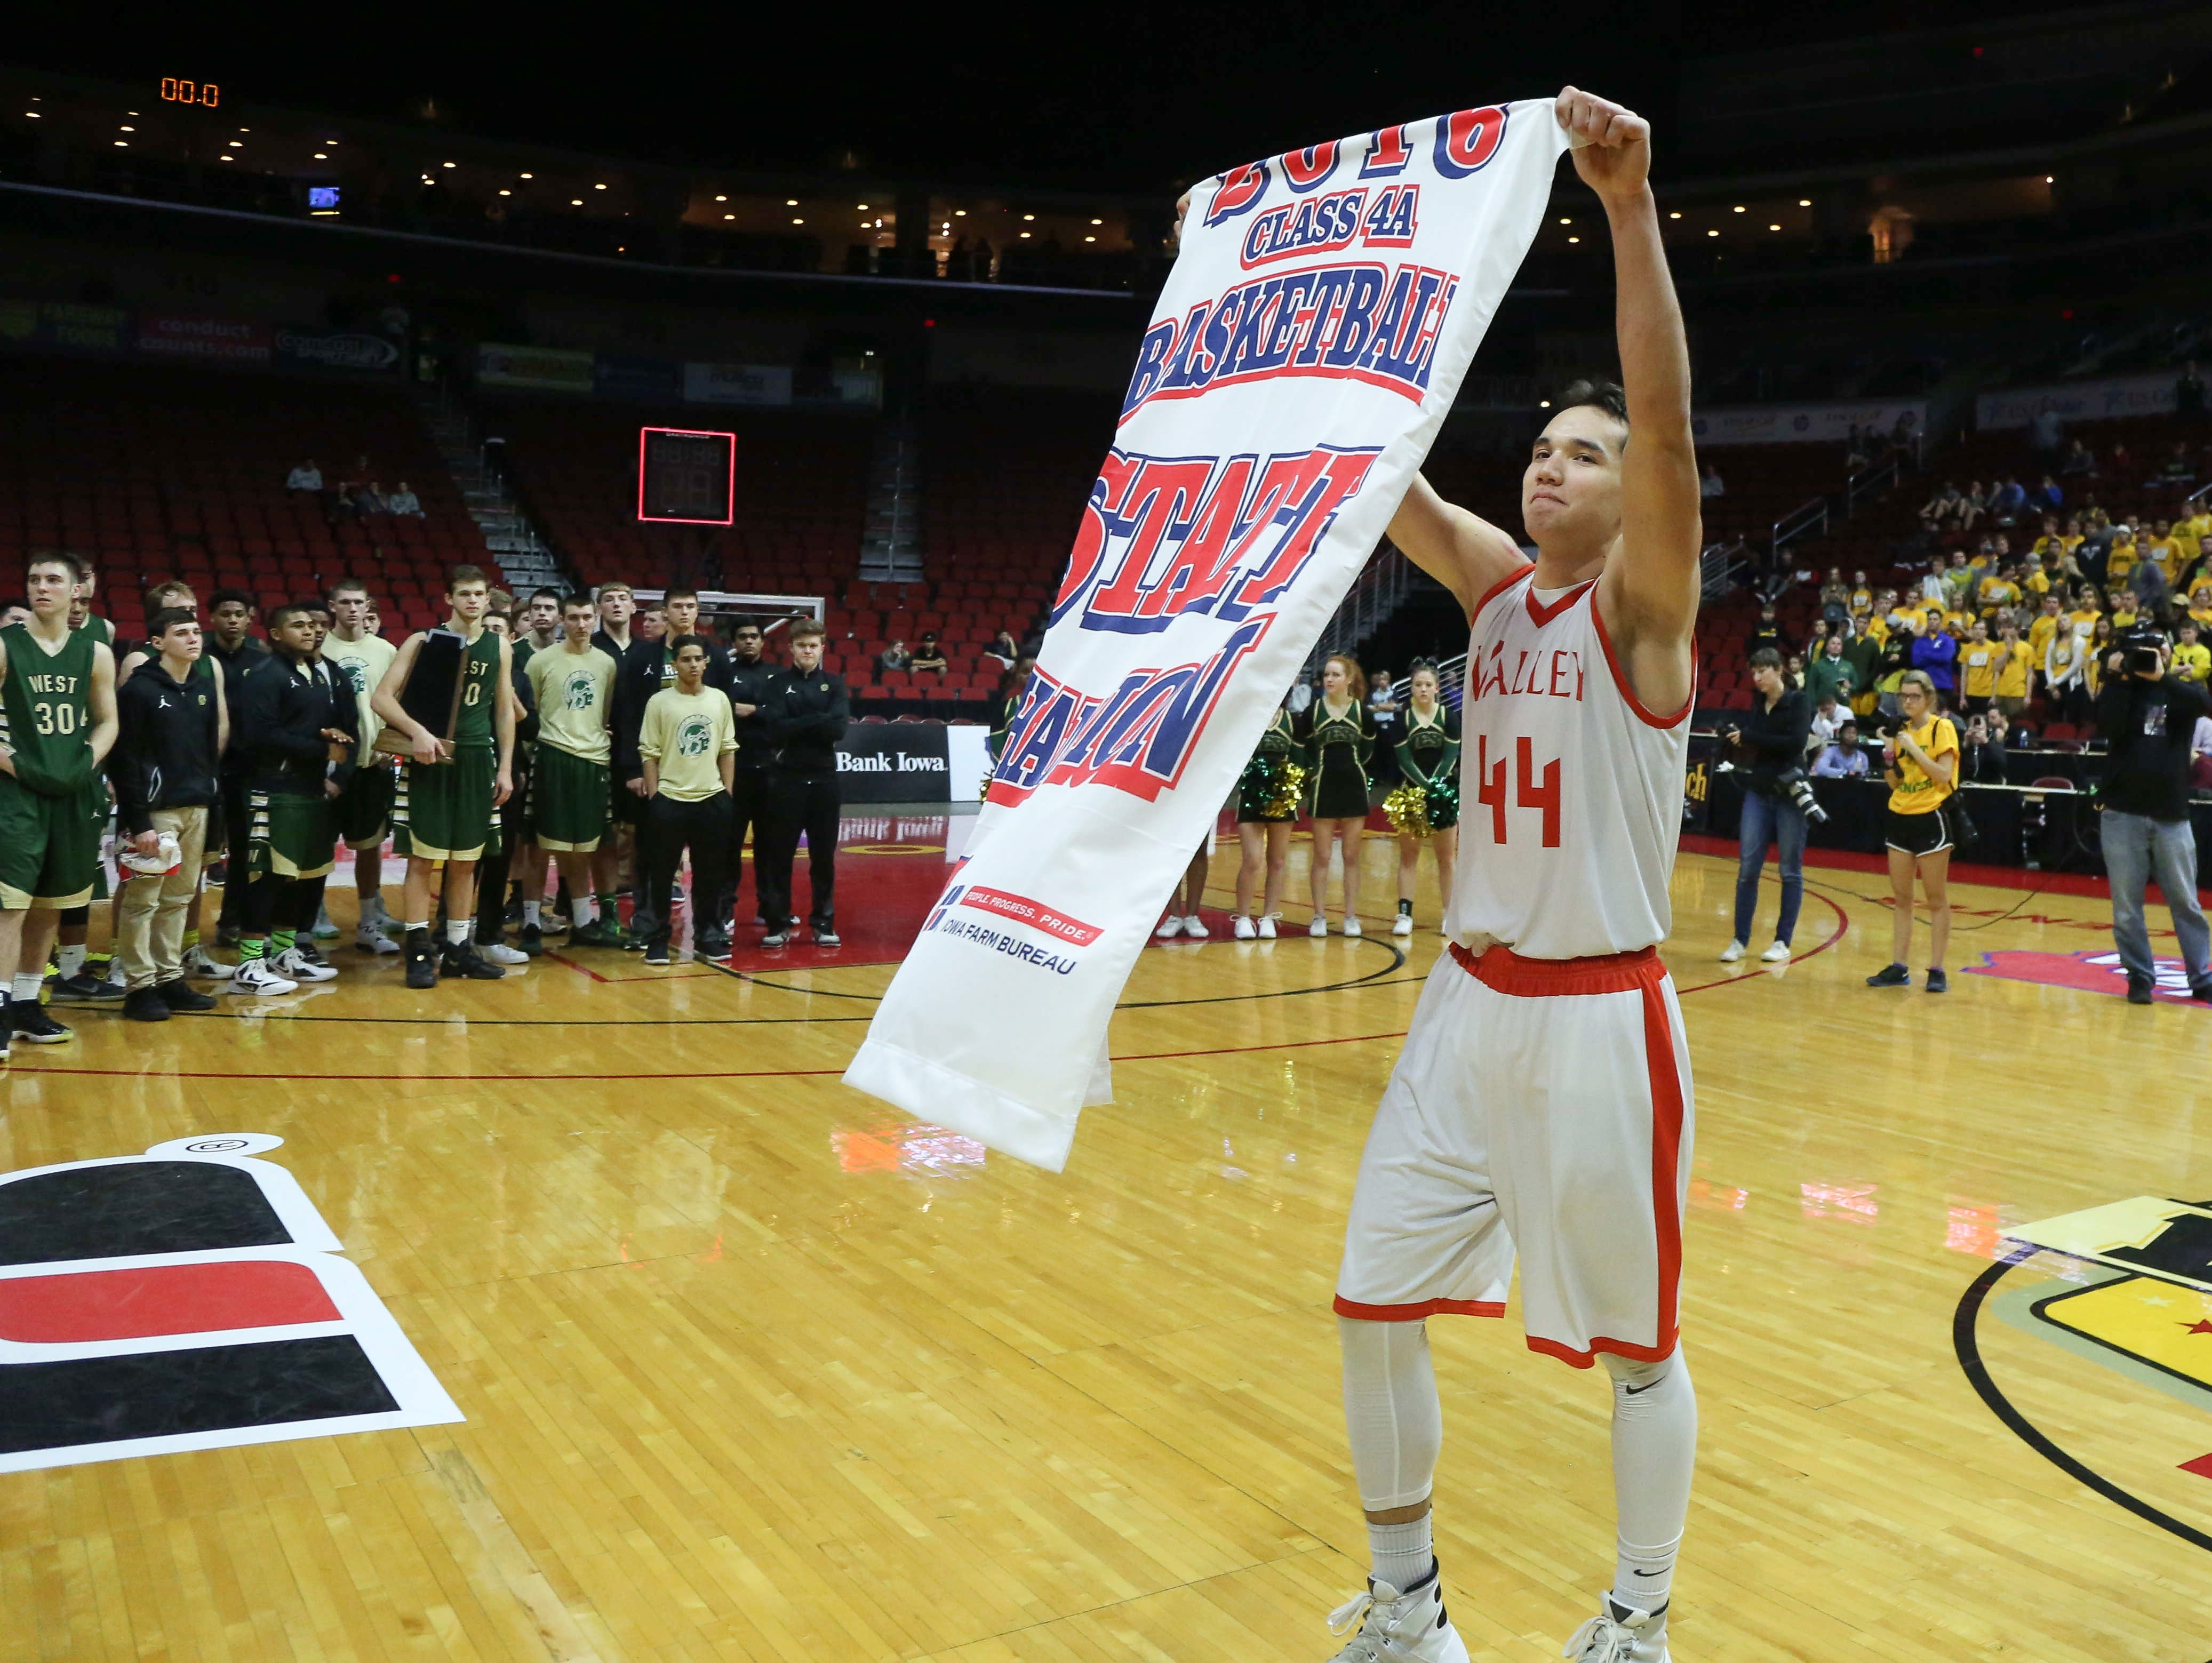 Valley junior Quinton Curry holds the Class 4A state championship banner after the Tigers beat Iowa City West on Saturday, March 12, 2016, at Wells Fargo Arena in Des Moines.